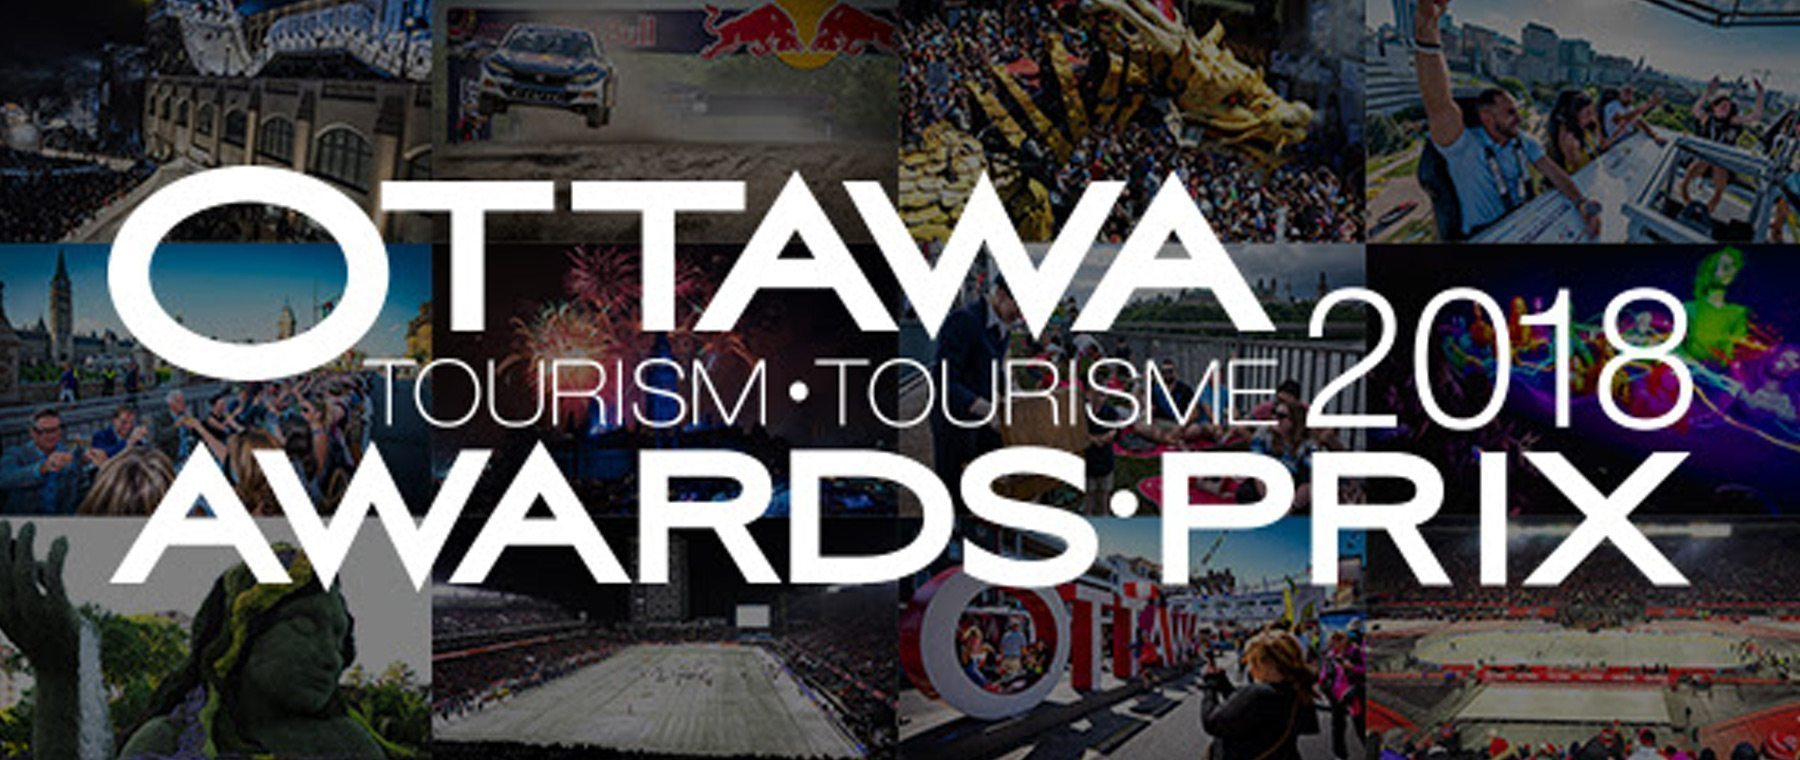 Nominations Open for 2018 Tourism Awards